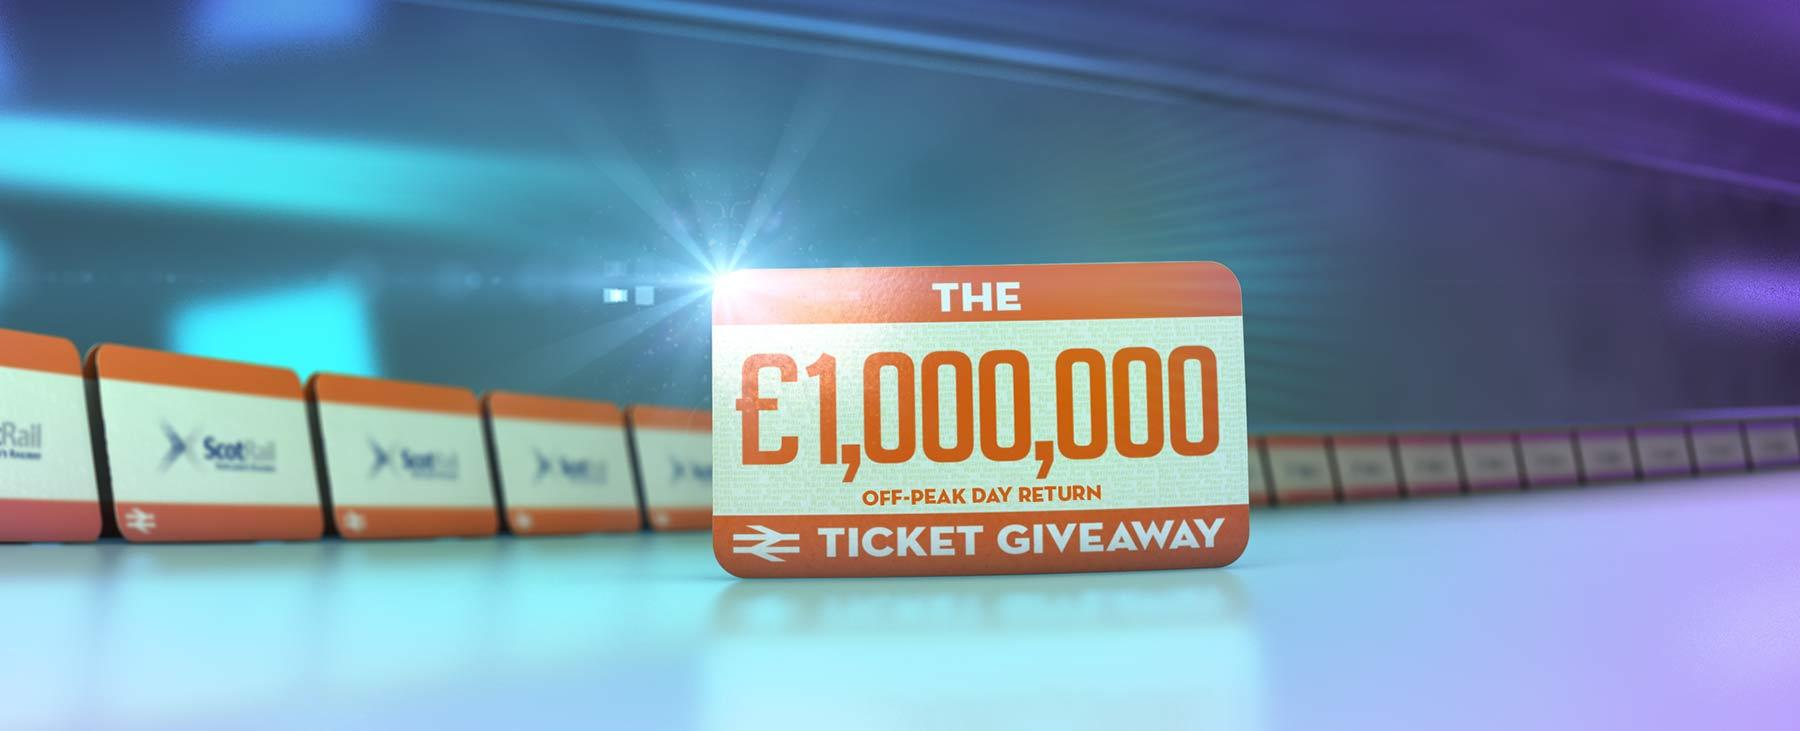 The £1,000,000 off-peak day return ticket giveaway